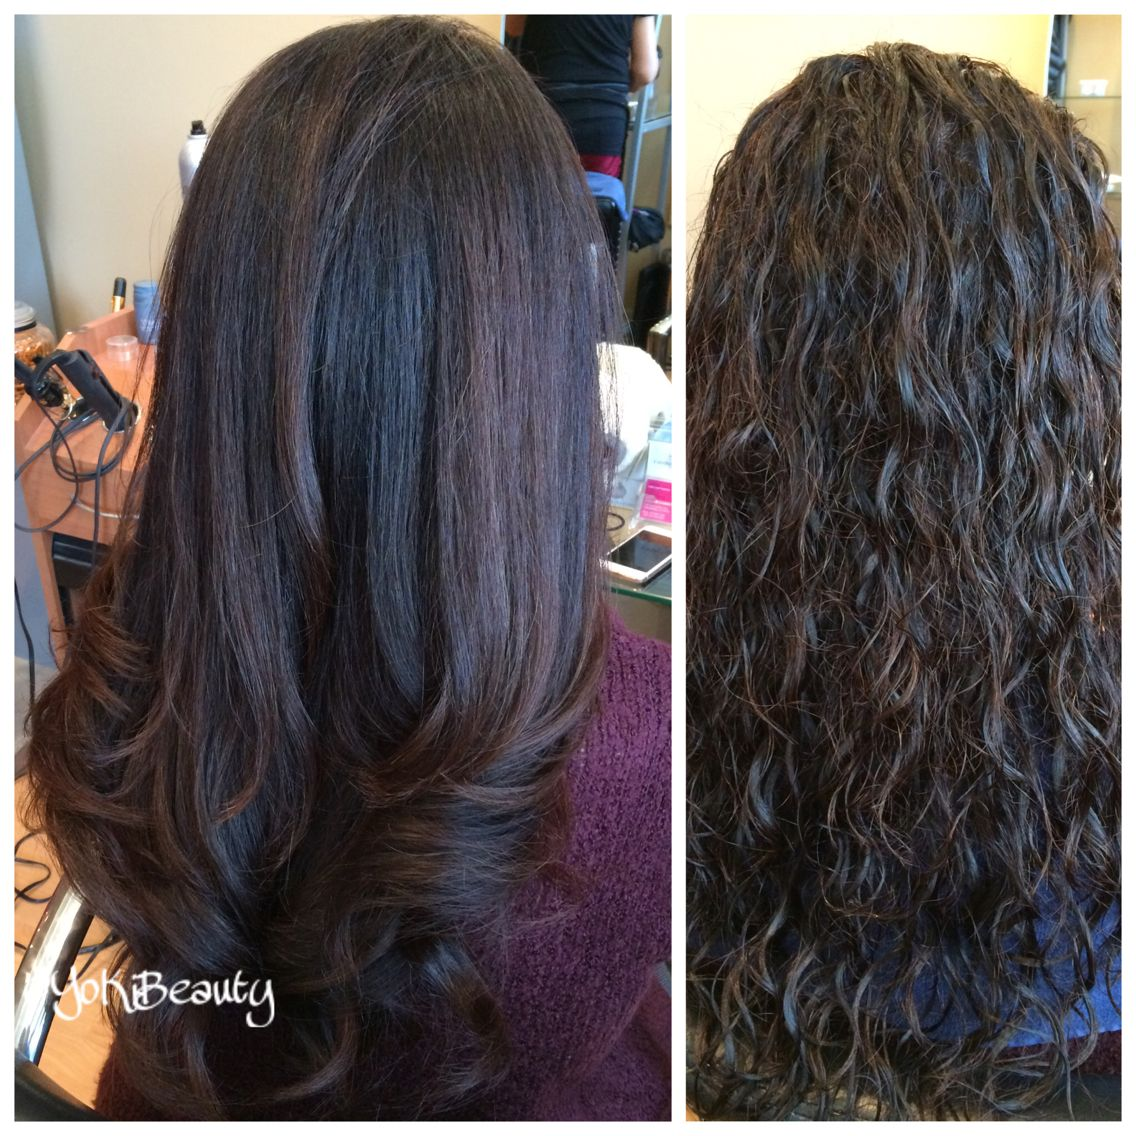 Before And After Just A Round Brush And Blow Dryer Long Hair Styles Hair Styles Blow Dry